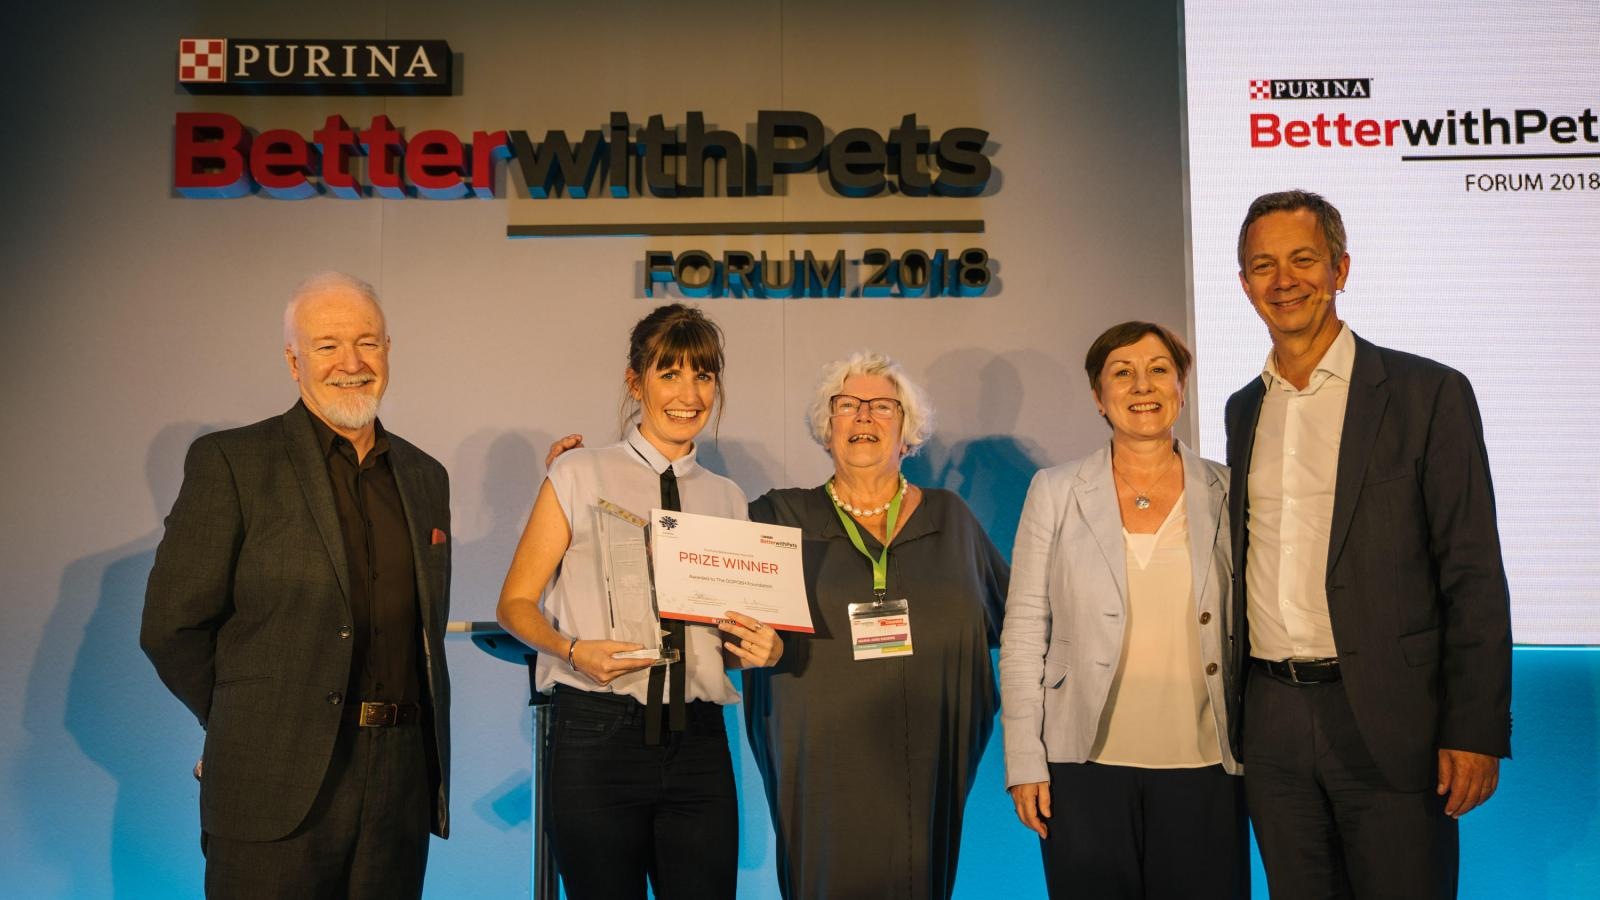 purina better with pets